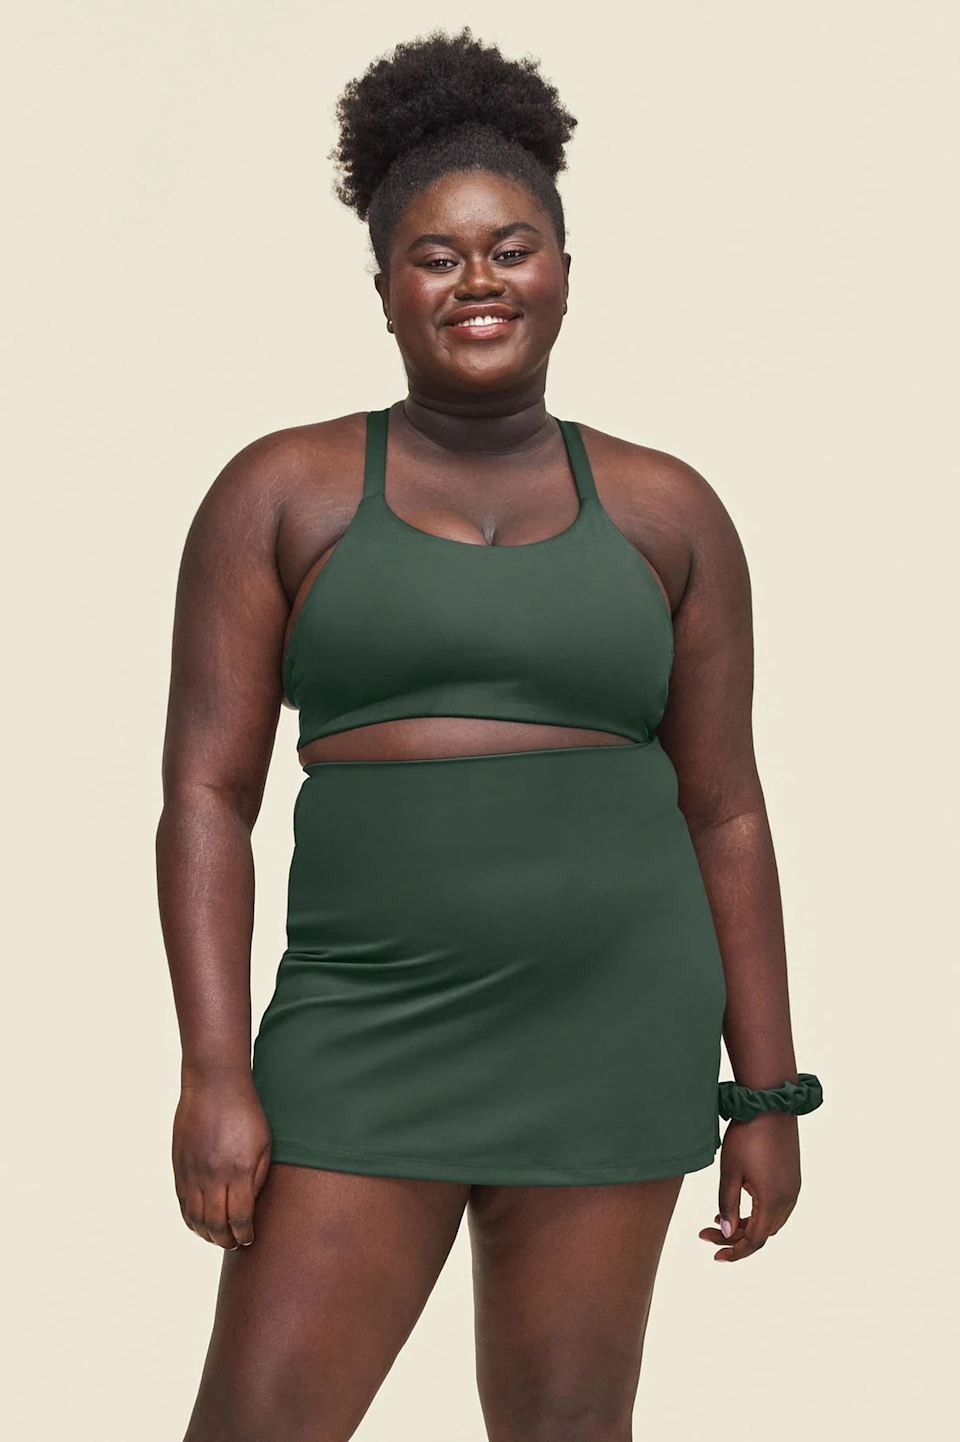 """<h2>Skorts</h2><br>Skorts used to mean """"skirt in the front, shorts in the back."""" But someone had the genius idea to simply build in compression bike shorts under the skirt and make the whole thing look far more seamless while offering coverage. Be sure to grab a workout skirt (or skort, however you call 'em) for your next match. They're stretchy, high-waisted, and ultra attractive — even when you're working up a sweat storm.<br><br><strong>Girlfriend Collective</strong> Moss Skort, $, available at <a href=""""https://go.skimresources.com/?id=30283X879131&url=https%3A%2F%2Fwww.girlfriend.com%2Fproducts%2Fmoss-skort%3Fvariant%3D32199229341759"""" rel=""""nofollow noopener"""" target=""""_blank"""" data-ylk=""""slk:Girlfriend Collective"""" class=""""link rapid-noclick-resp"""">Girlfriend Collective</a>"""